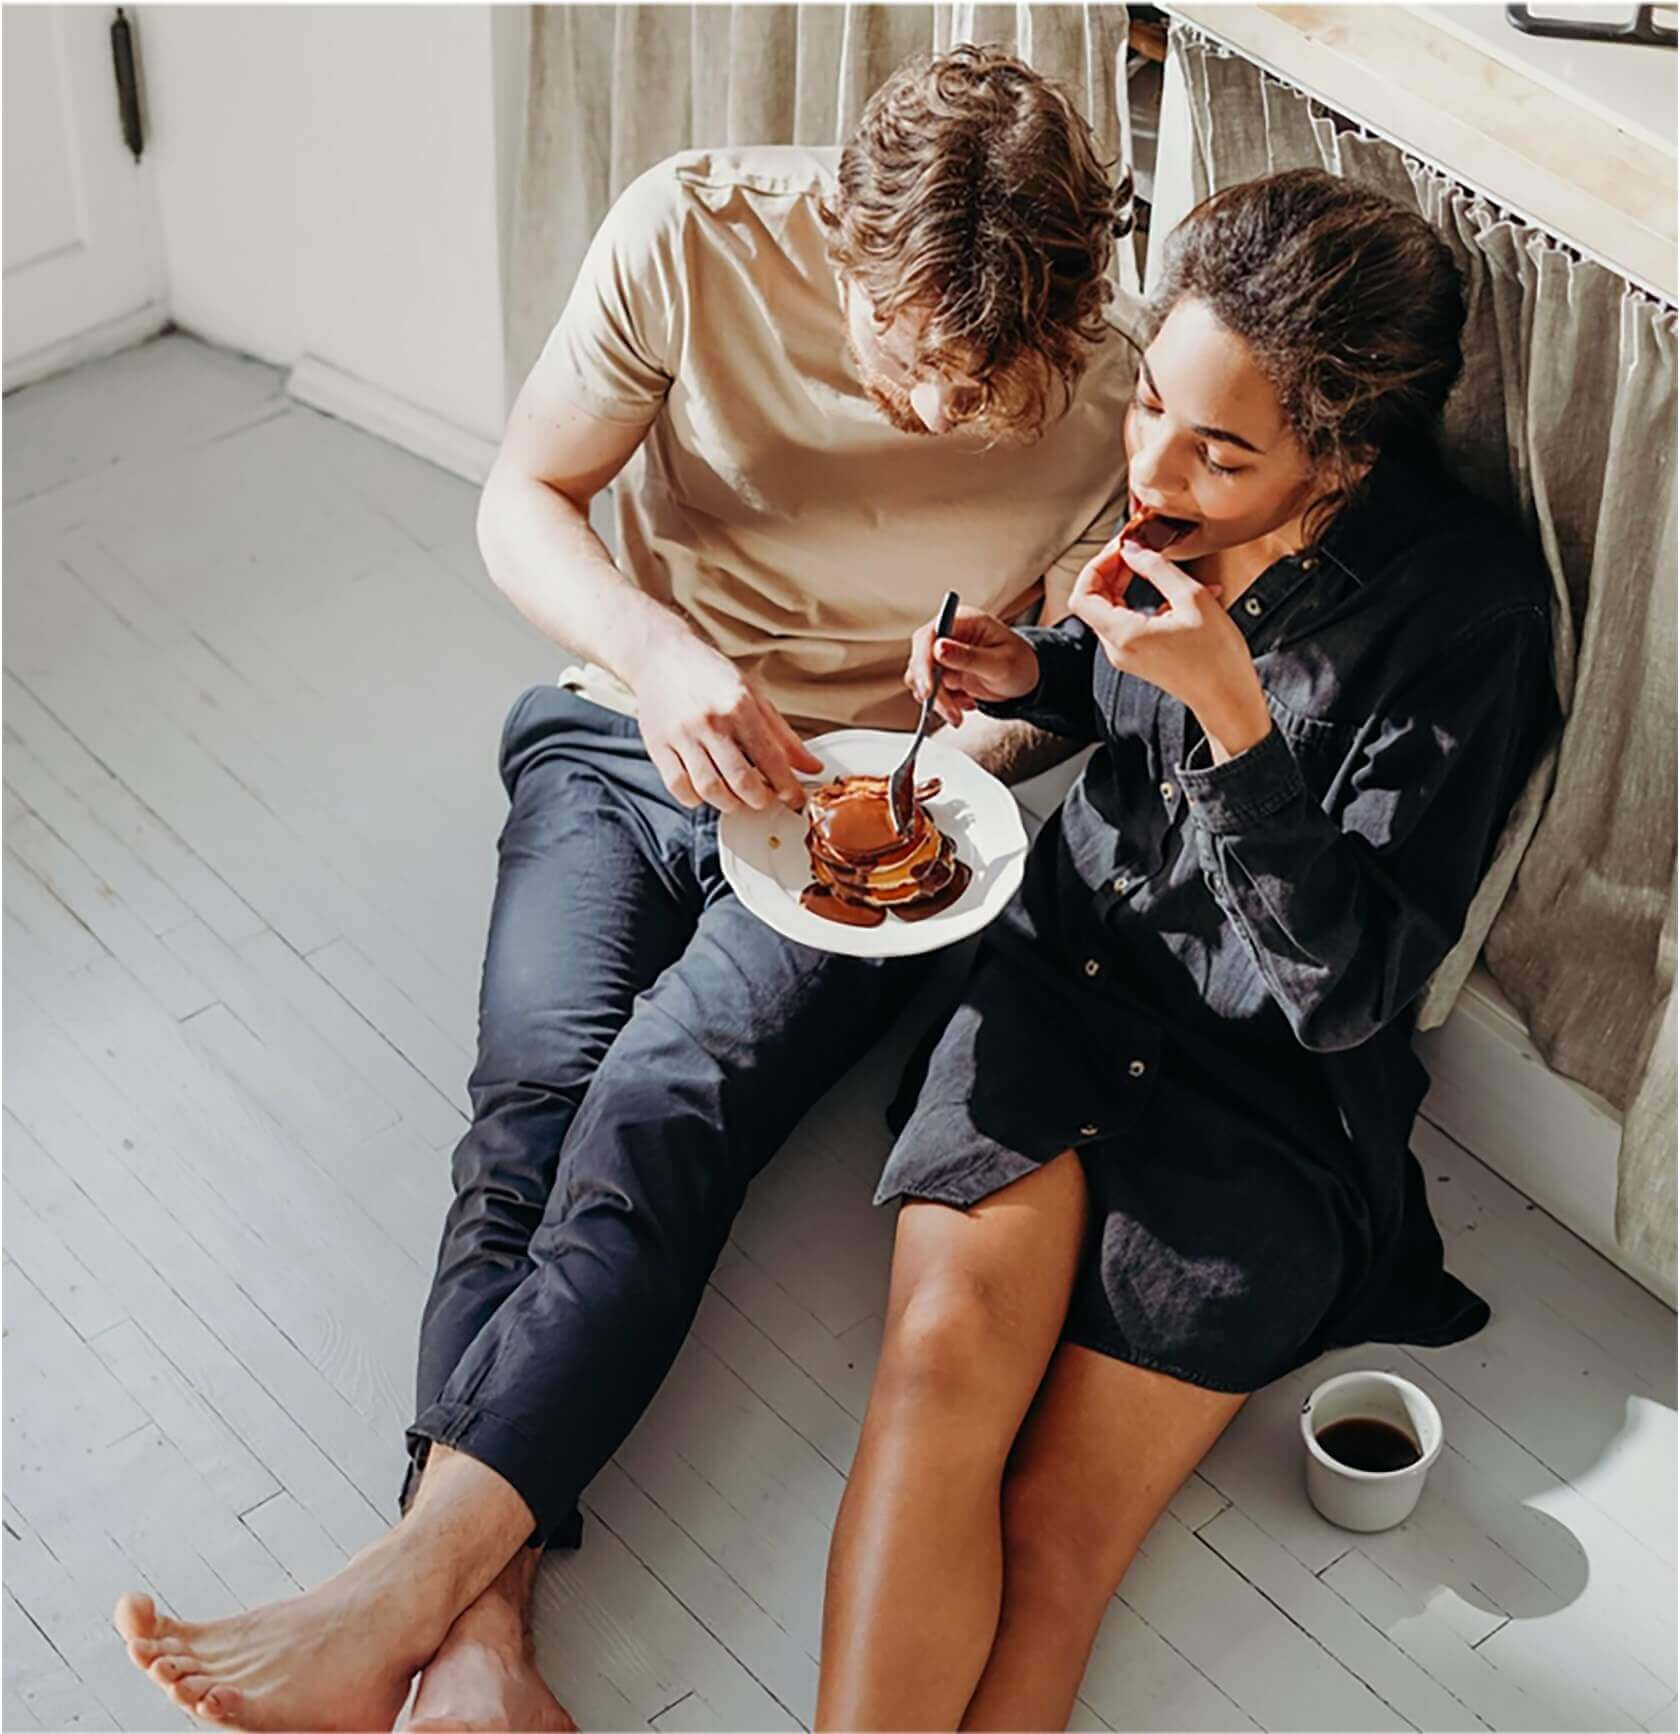 Two people enjoying a desert together